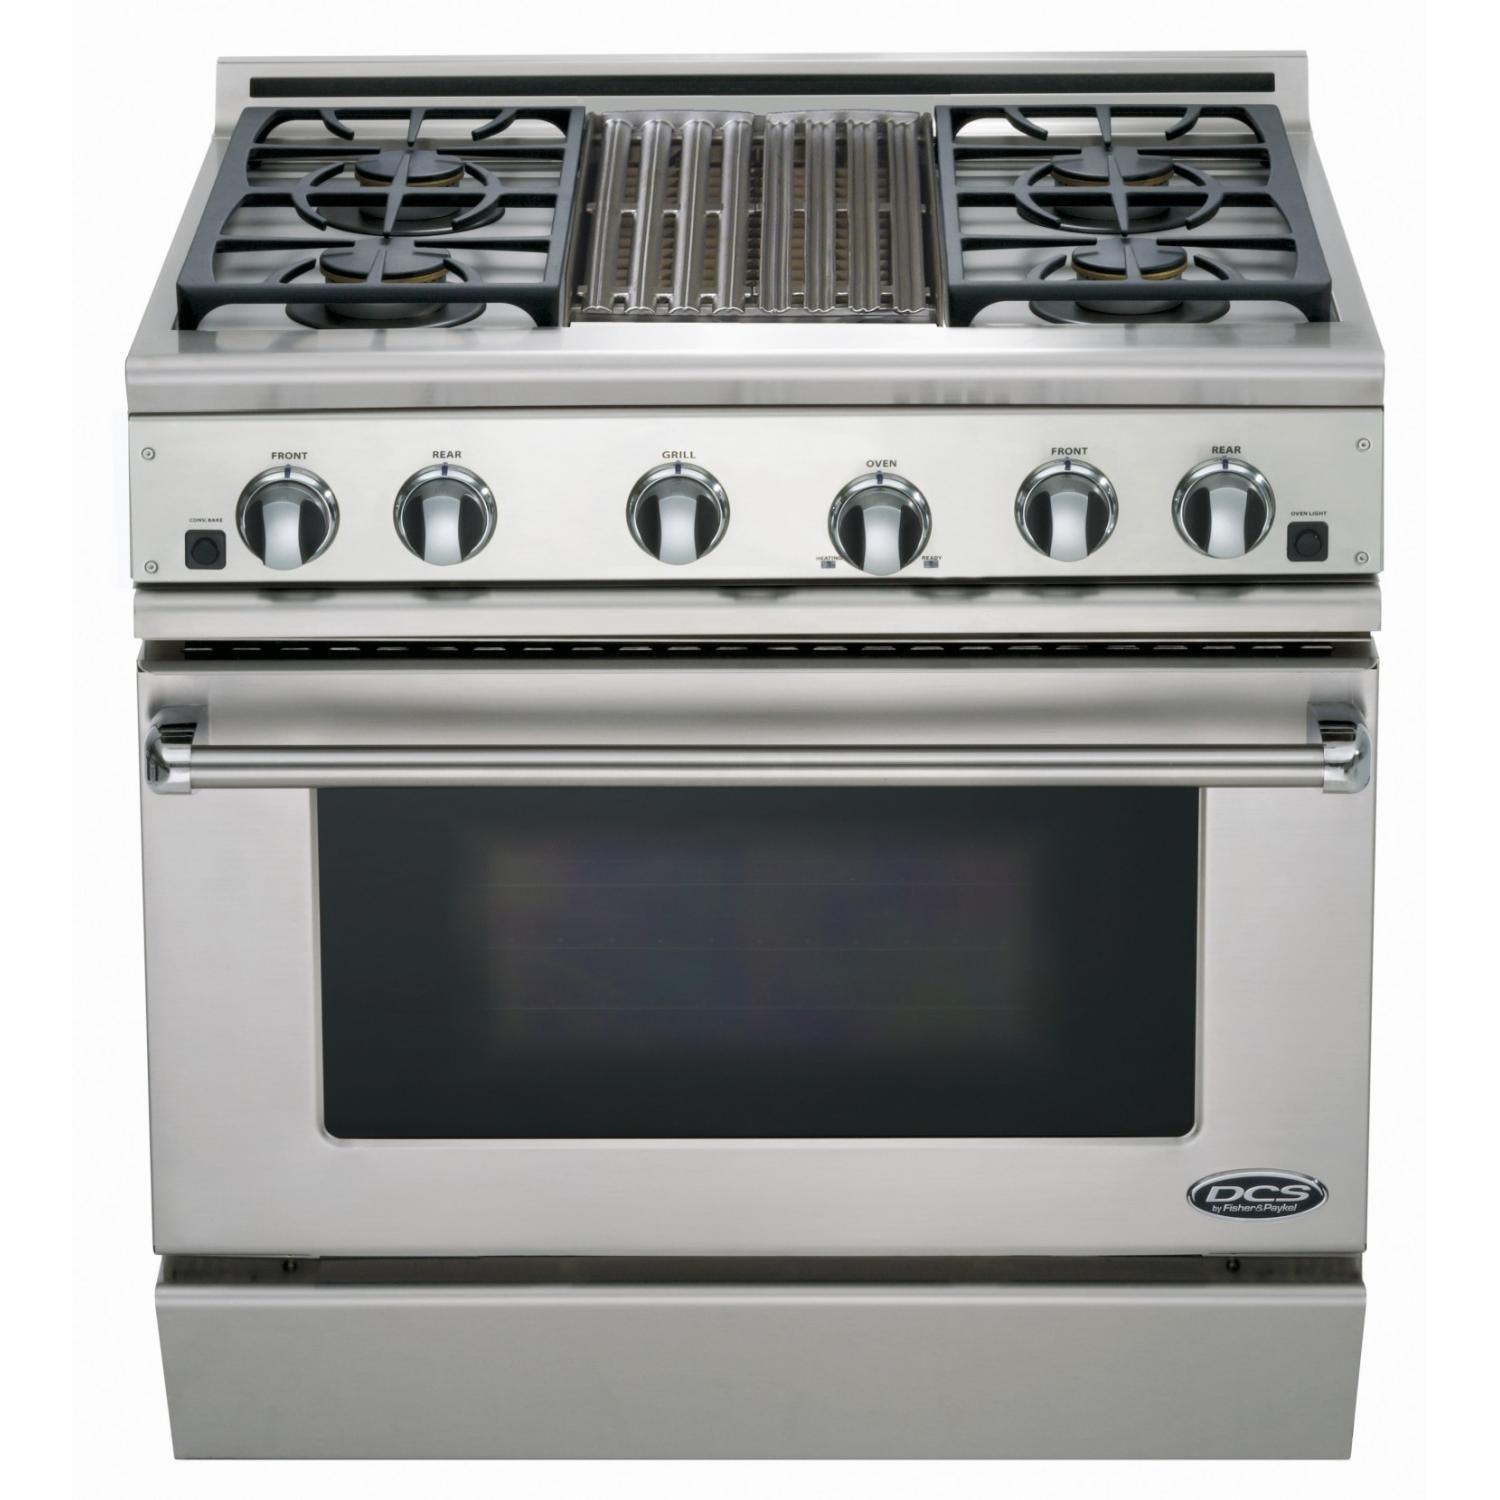 Exceptional Gas Oven And Grill Part - 4: Gas Range Stoves With Grill | DCS Ranges 36-Inch Natural Gas Range With  Grill